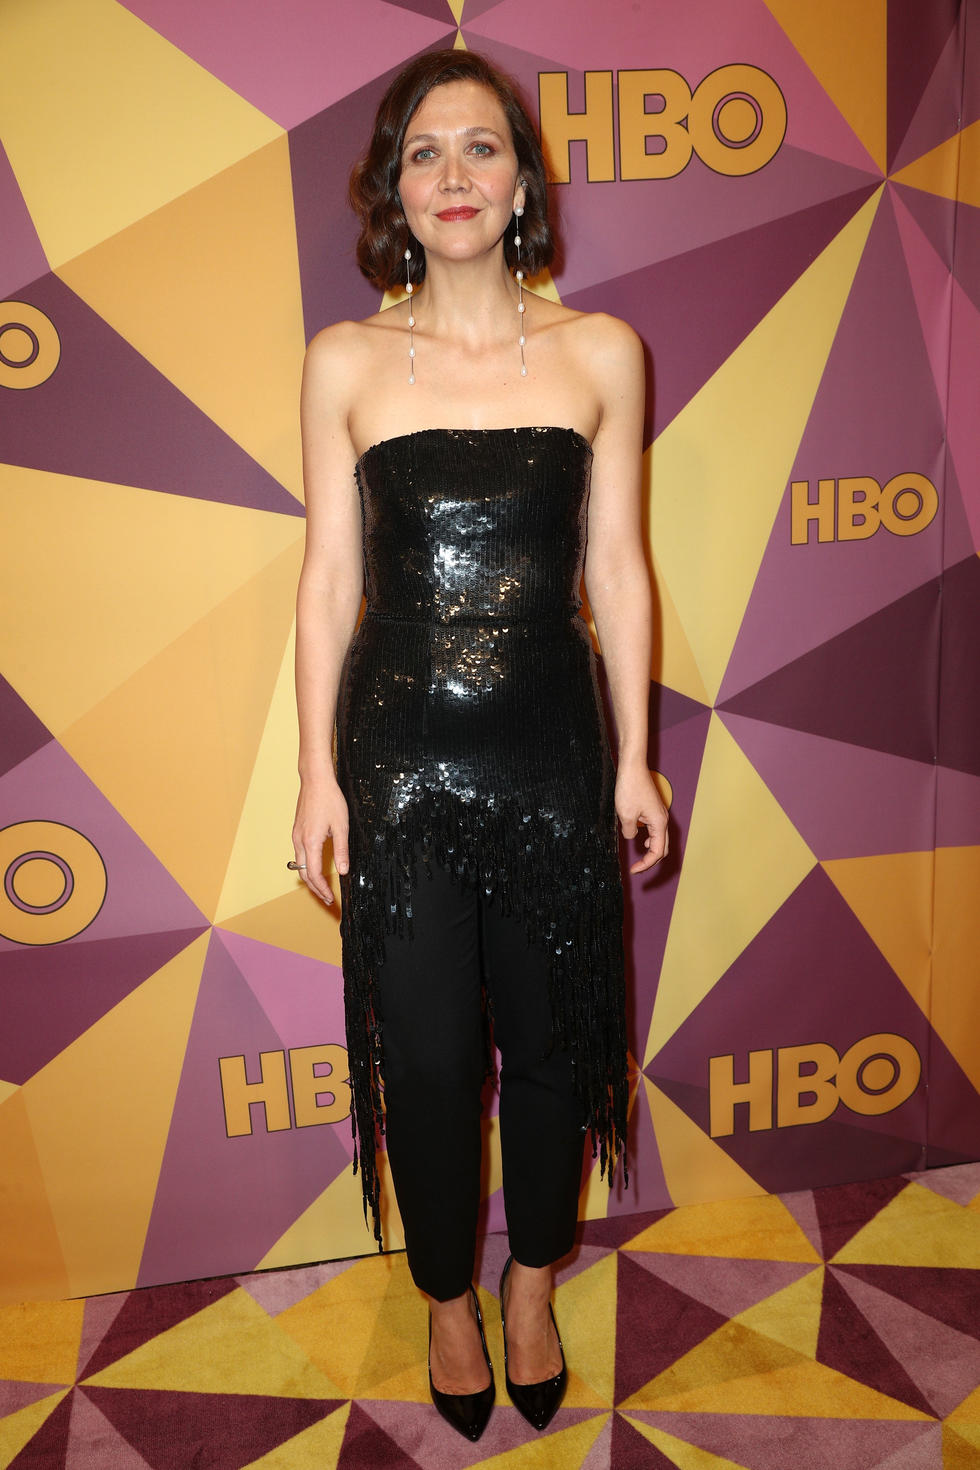 Maggie Gyllenhaal in an outfit by Monse teamed with Sophie Buhai earrings